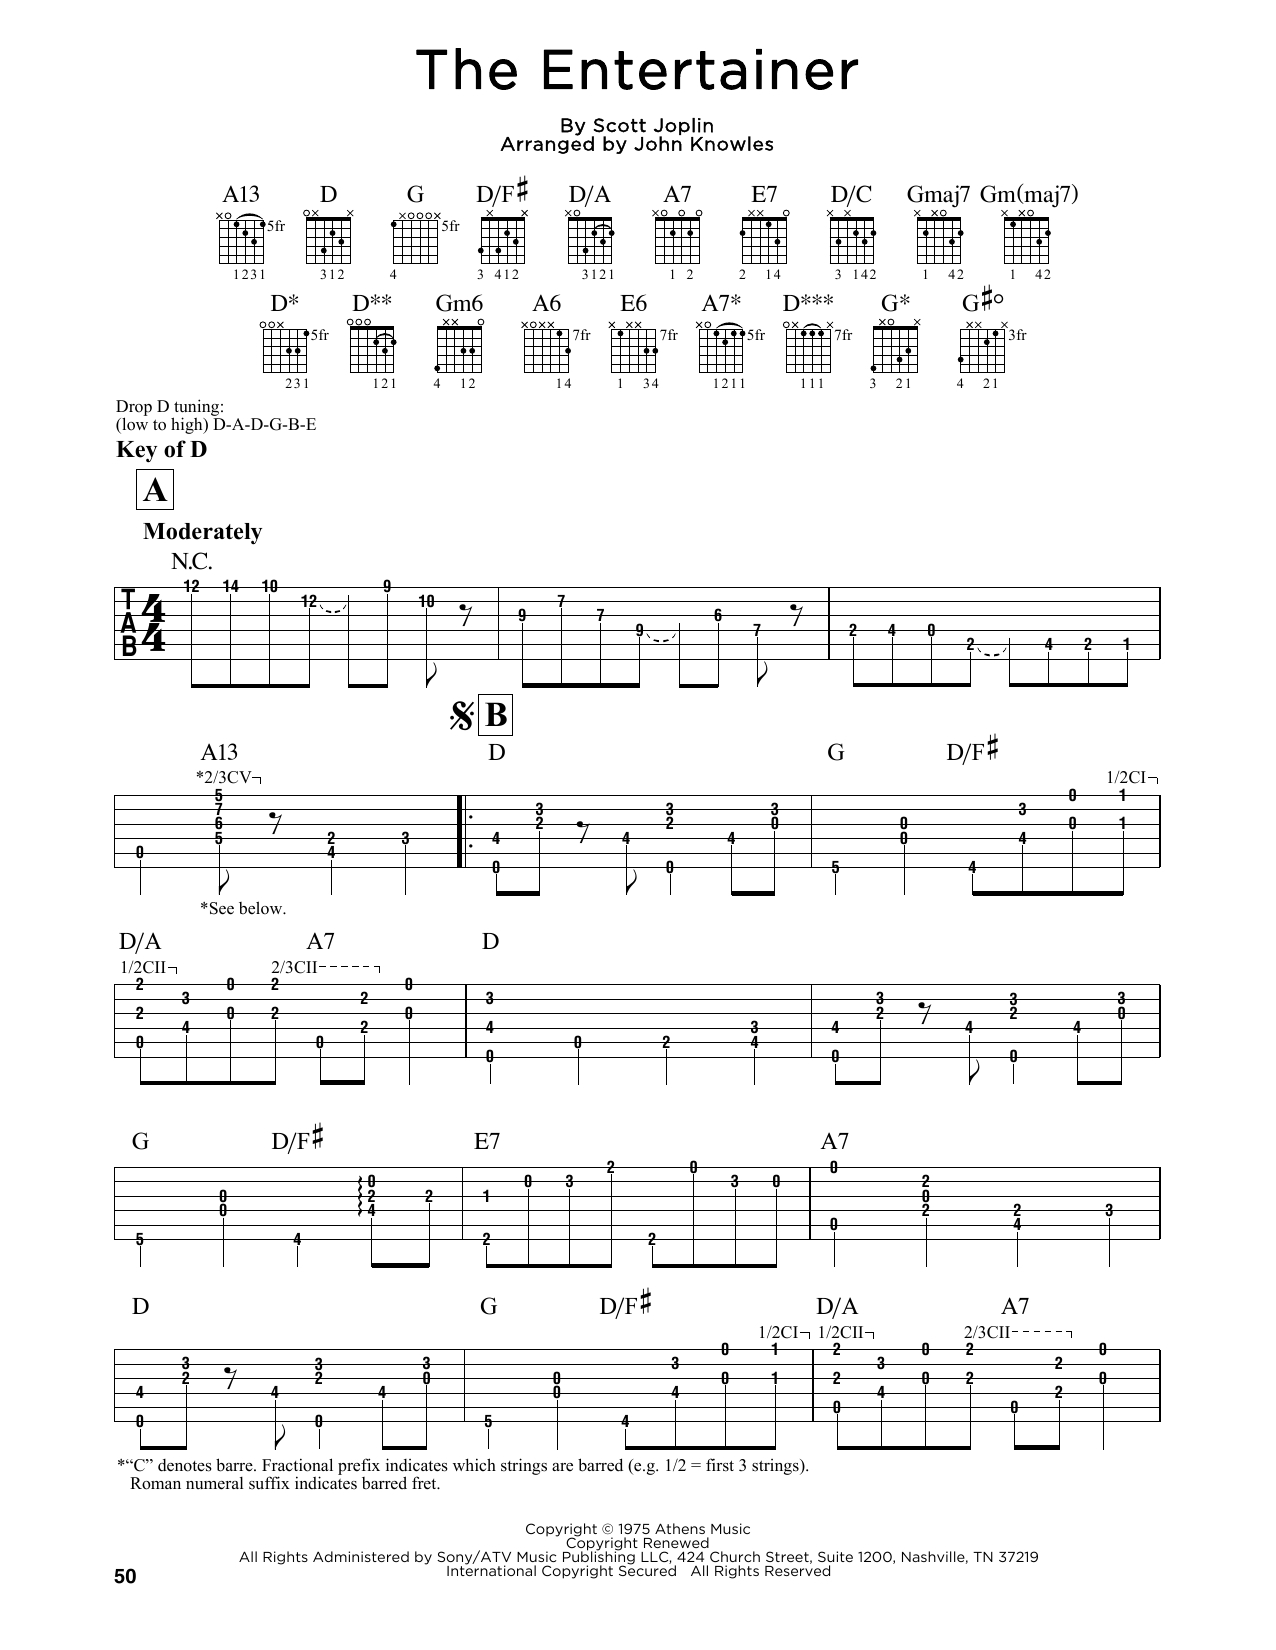 """John Knowles """"the Entertainer"""" Sheet Music Notes, Chords 